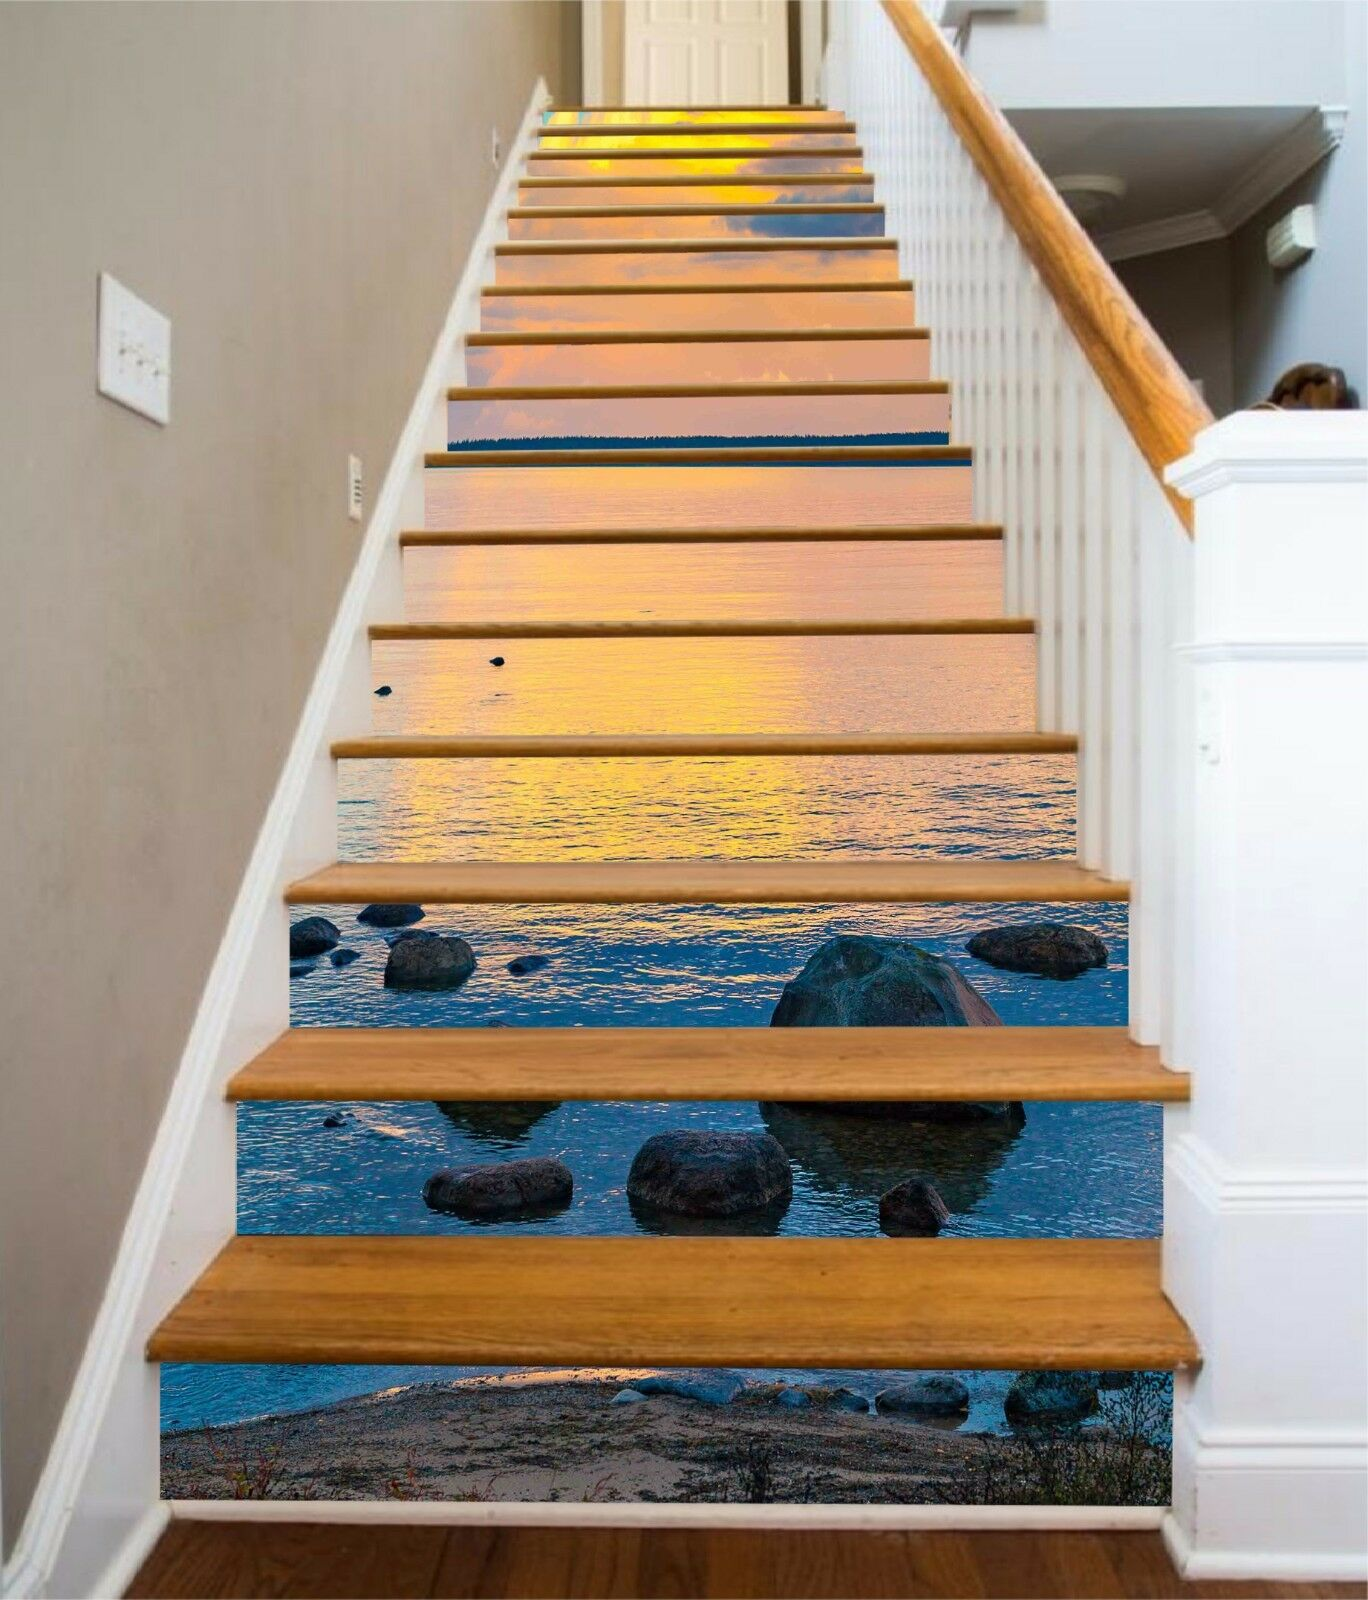 3D Sunset sea 2433 Stair Risers Decoration Photo Mural Vinyl Decal Wallpaper UK